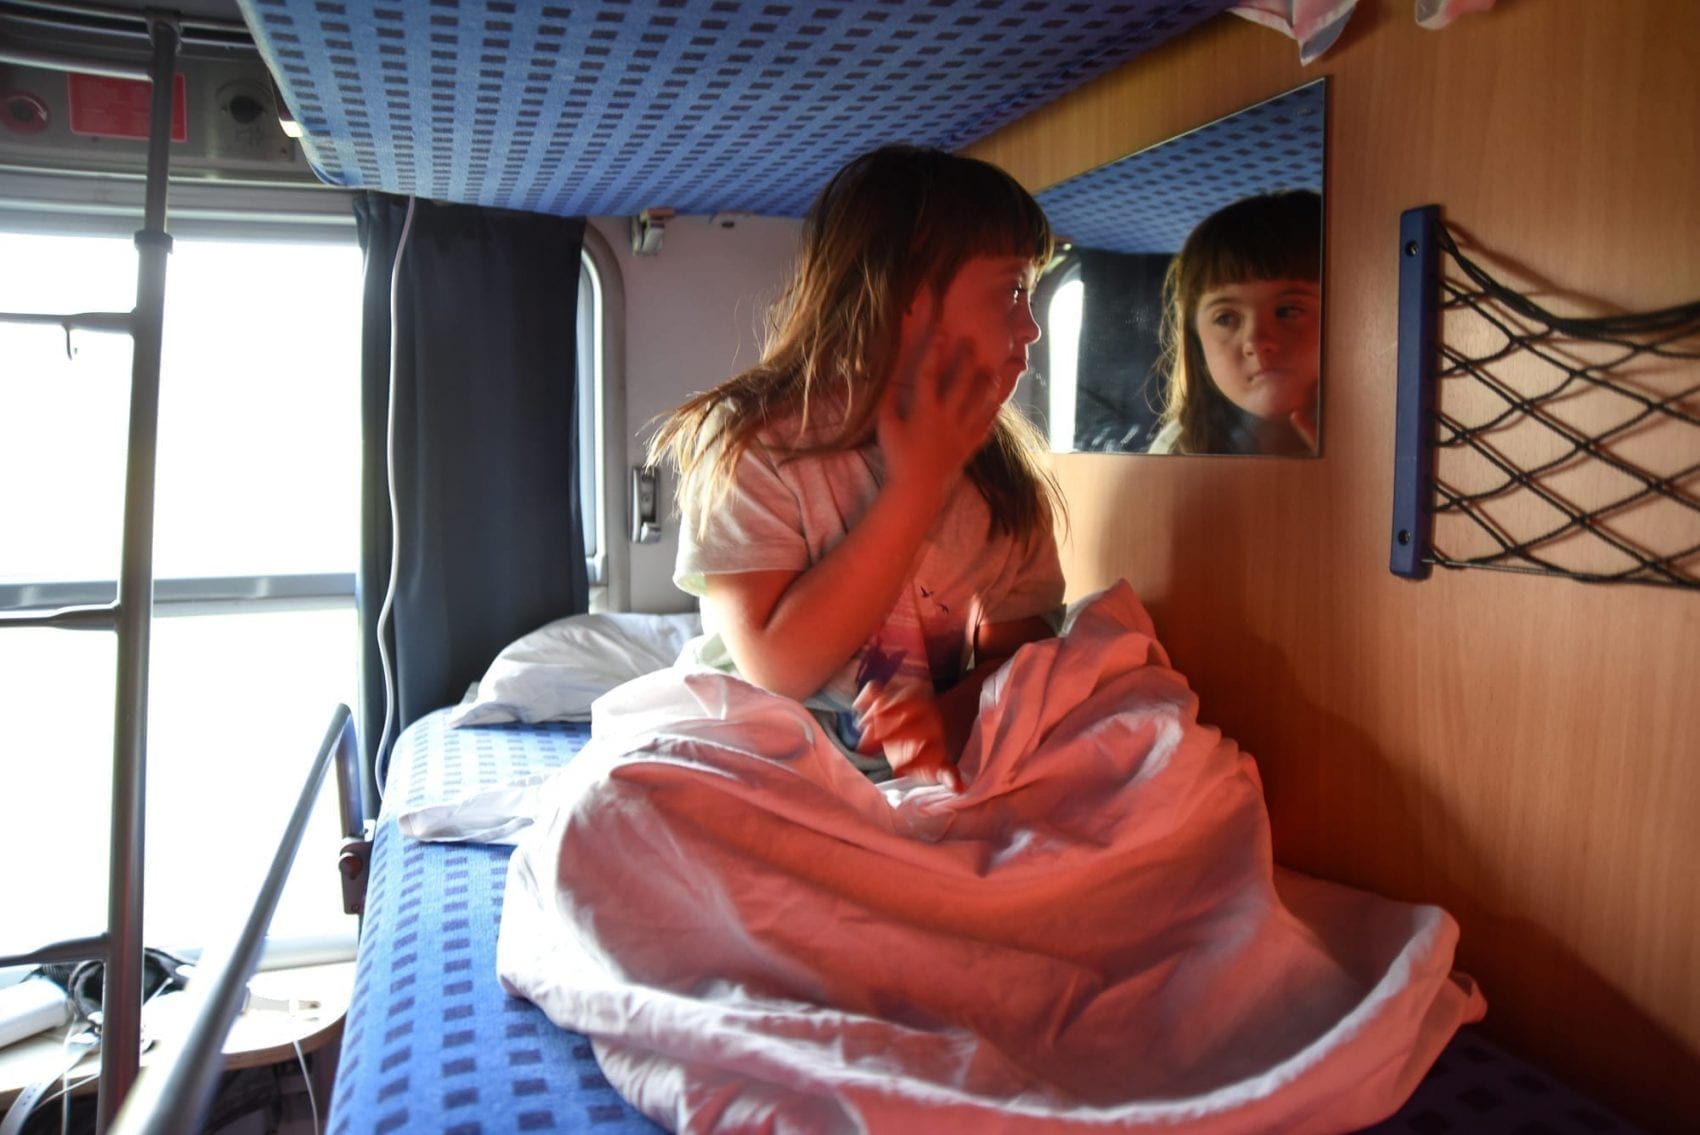 night train from budapest to krakow: a little girl looks in the mirror on her bunk at herself